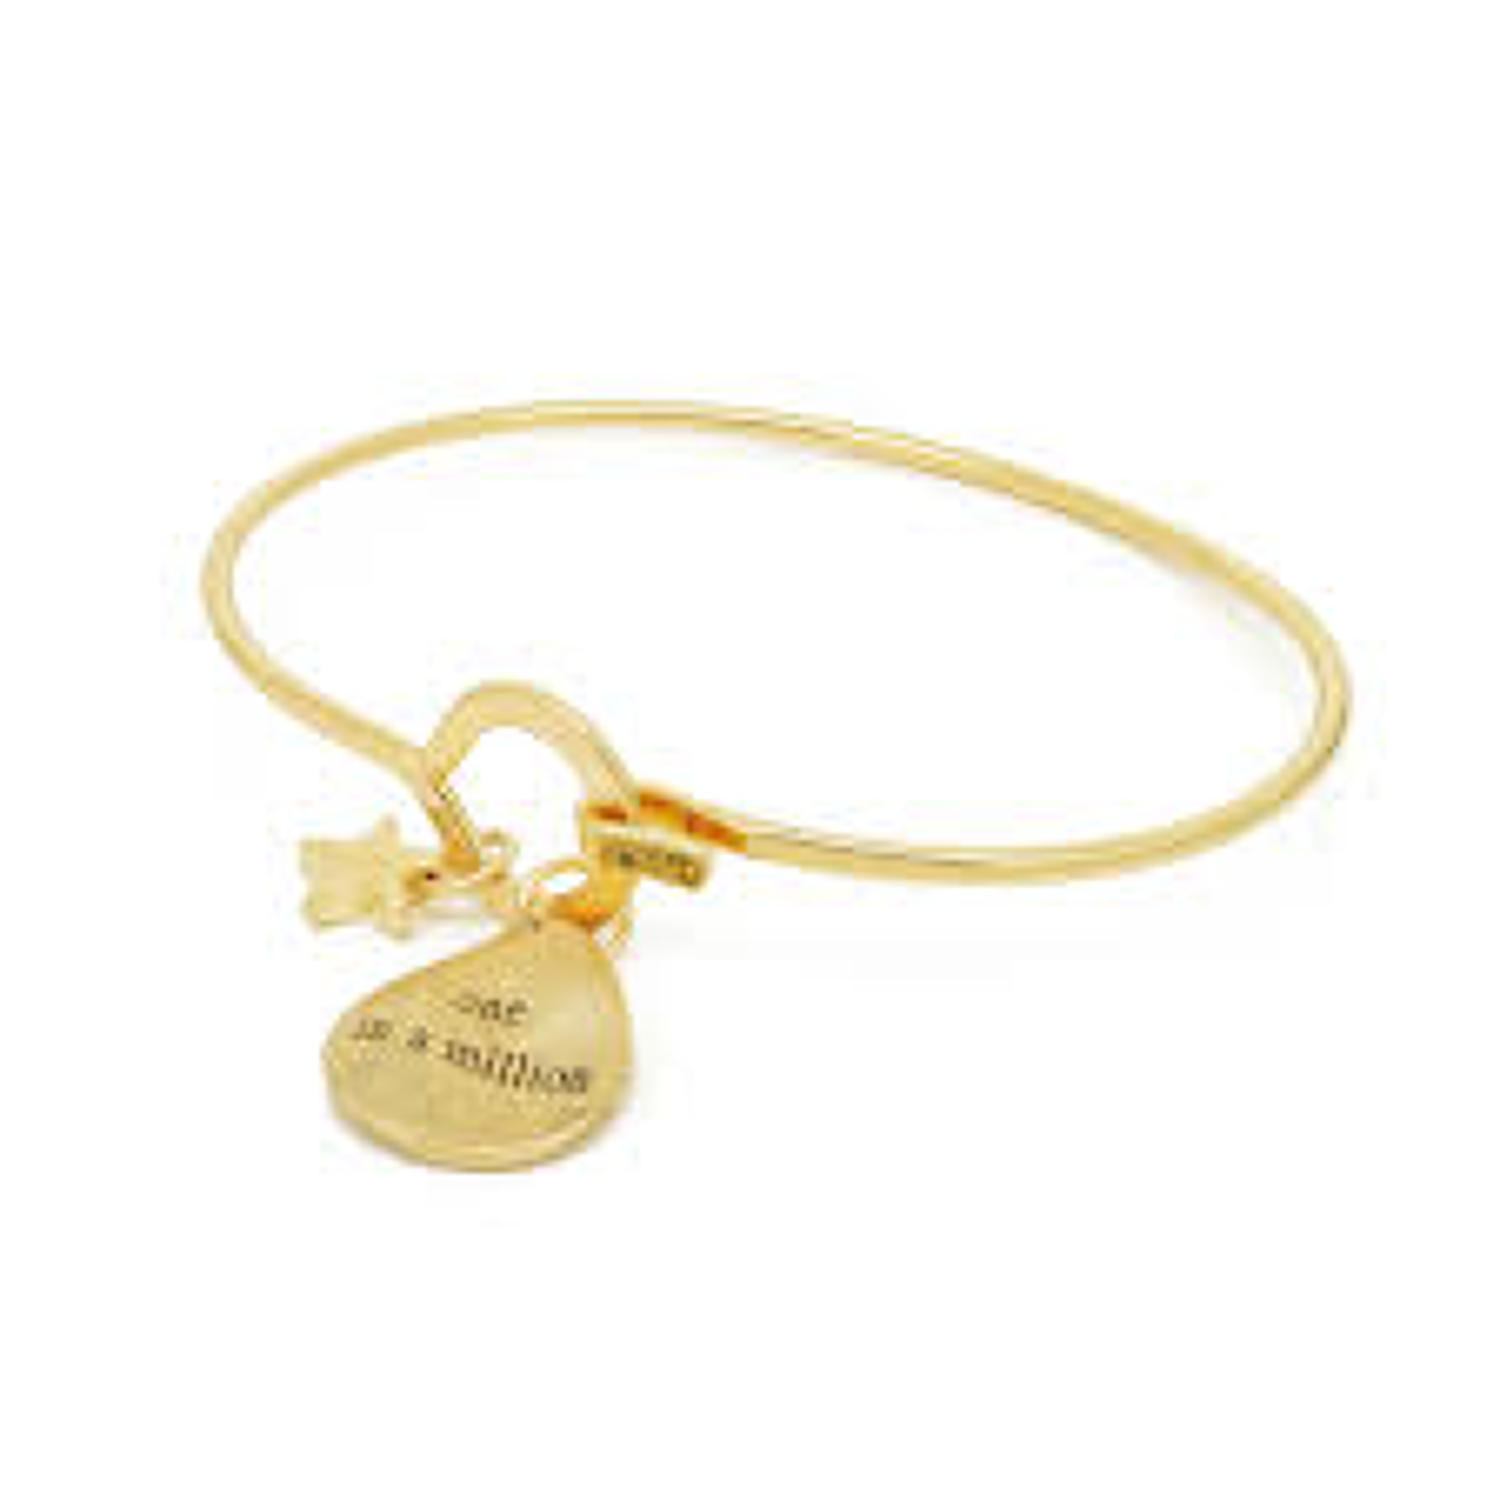 White Leaf - One in a million bangle matt 20k gold plate